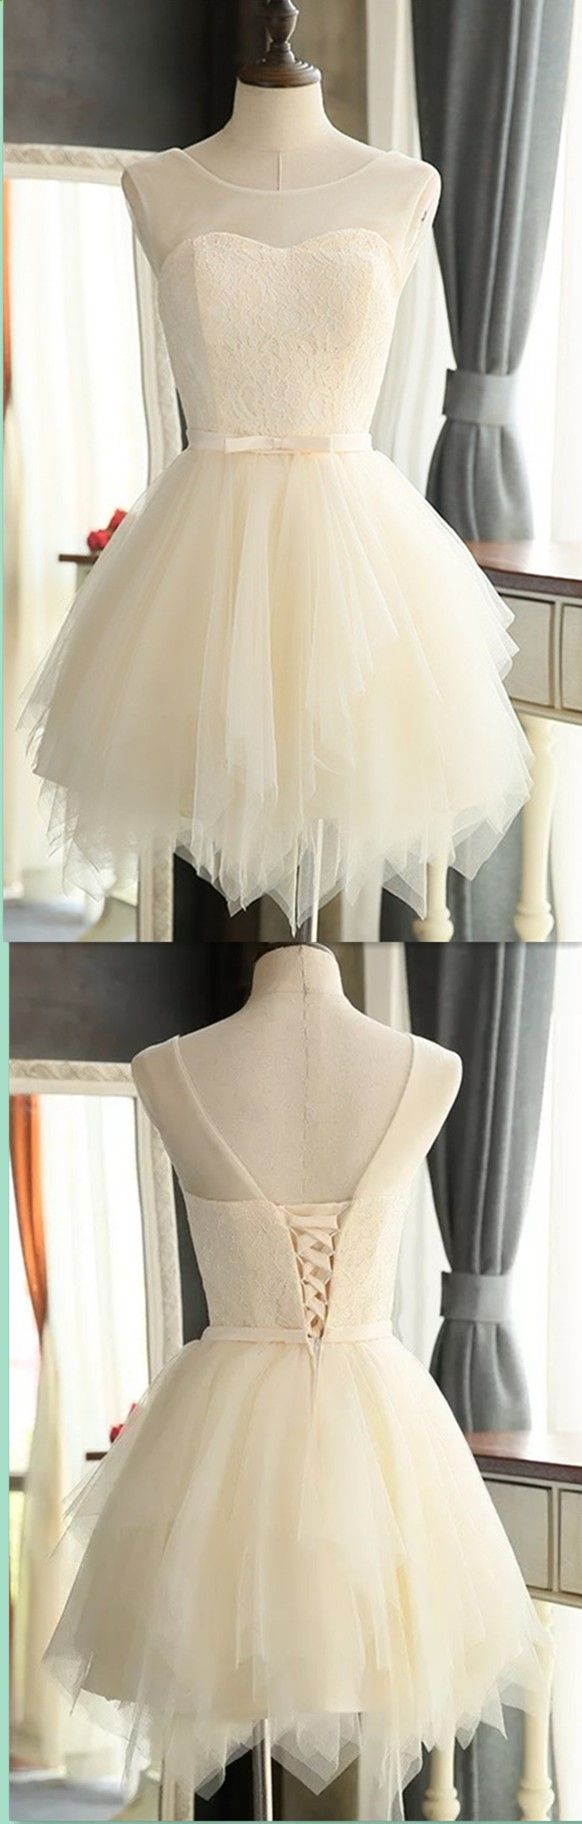 Simple Homecoming Dresses,Short Prom Dresses,Cocktail Dress,Homecoming Dress,Graduation Dress,Party Dress,Short Homecoming Dress